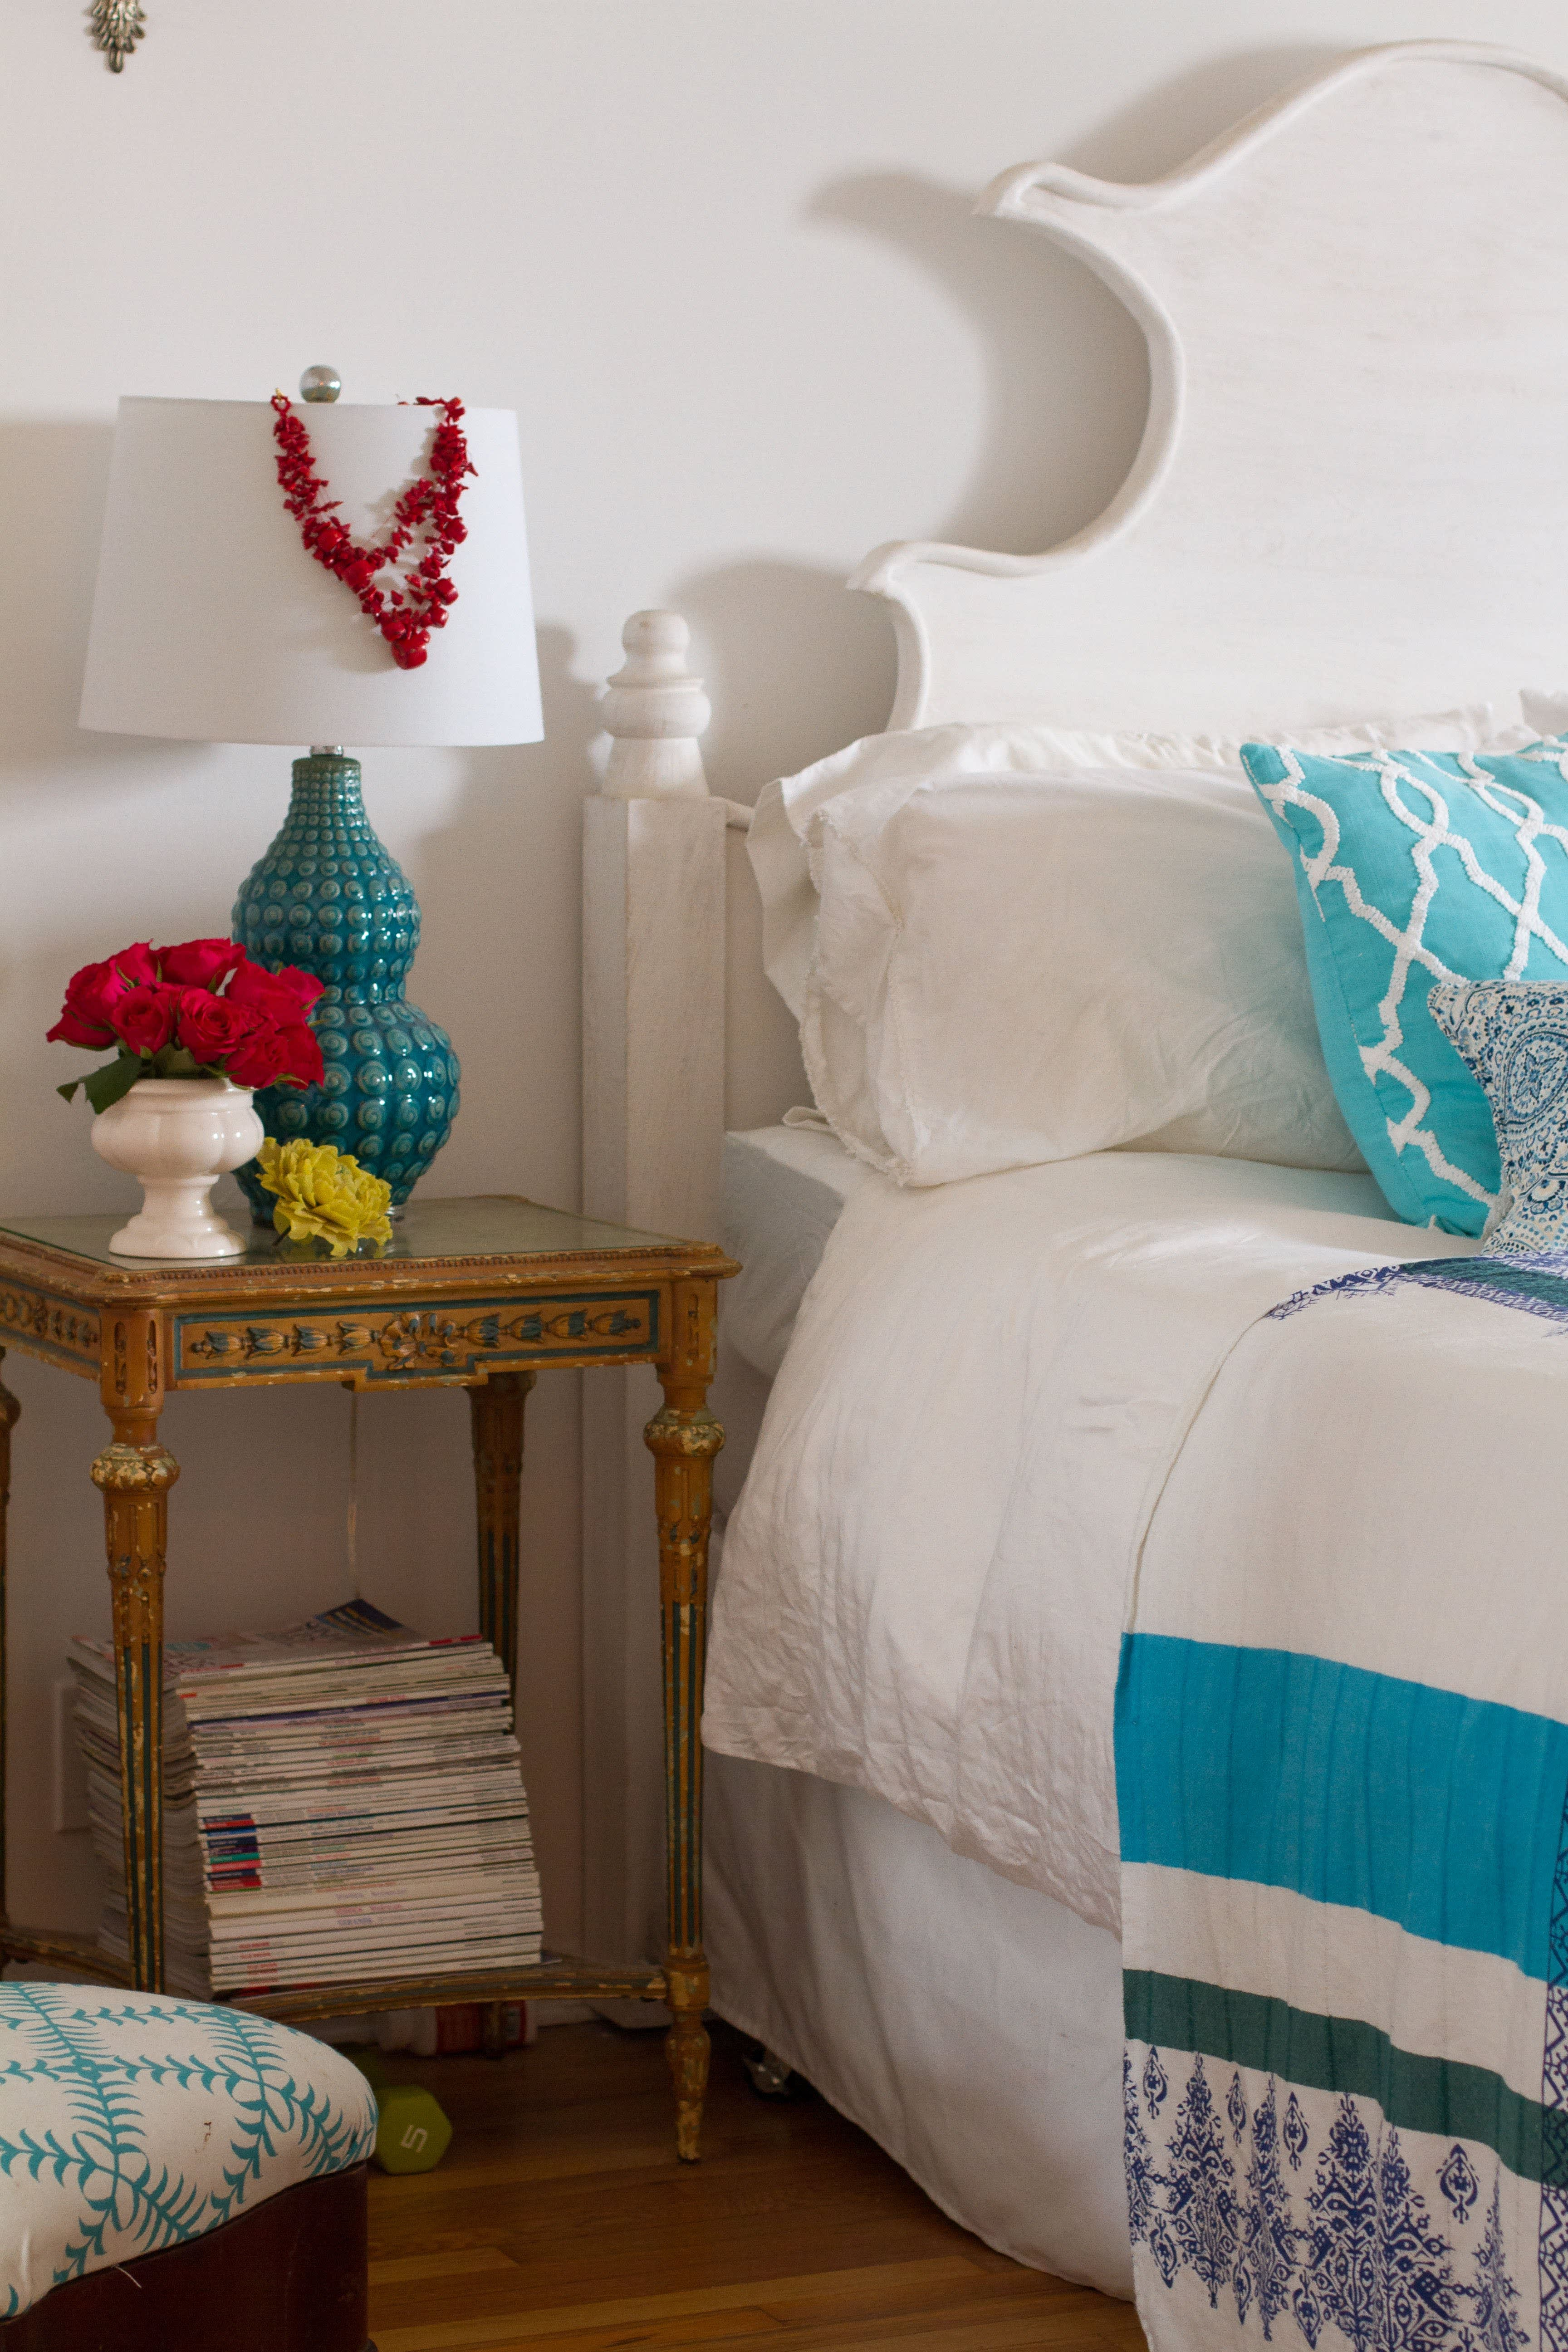 House Tour: A Mother & Daughter Create A Bohemian Home